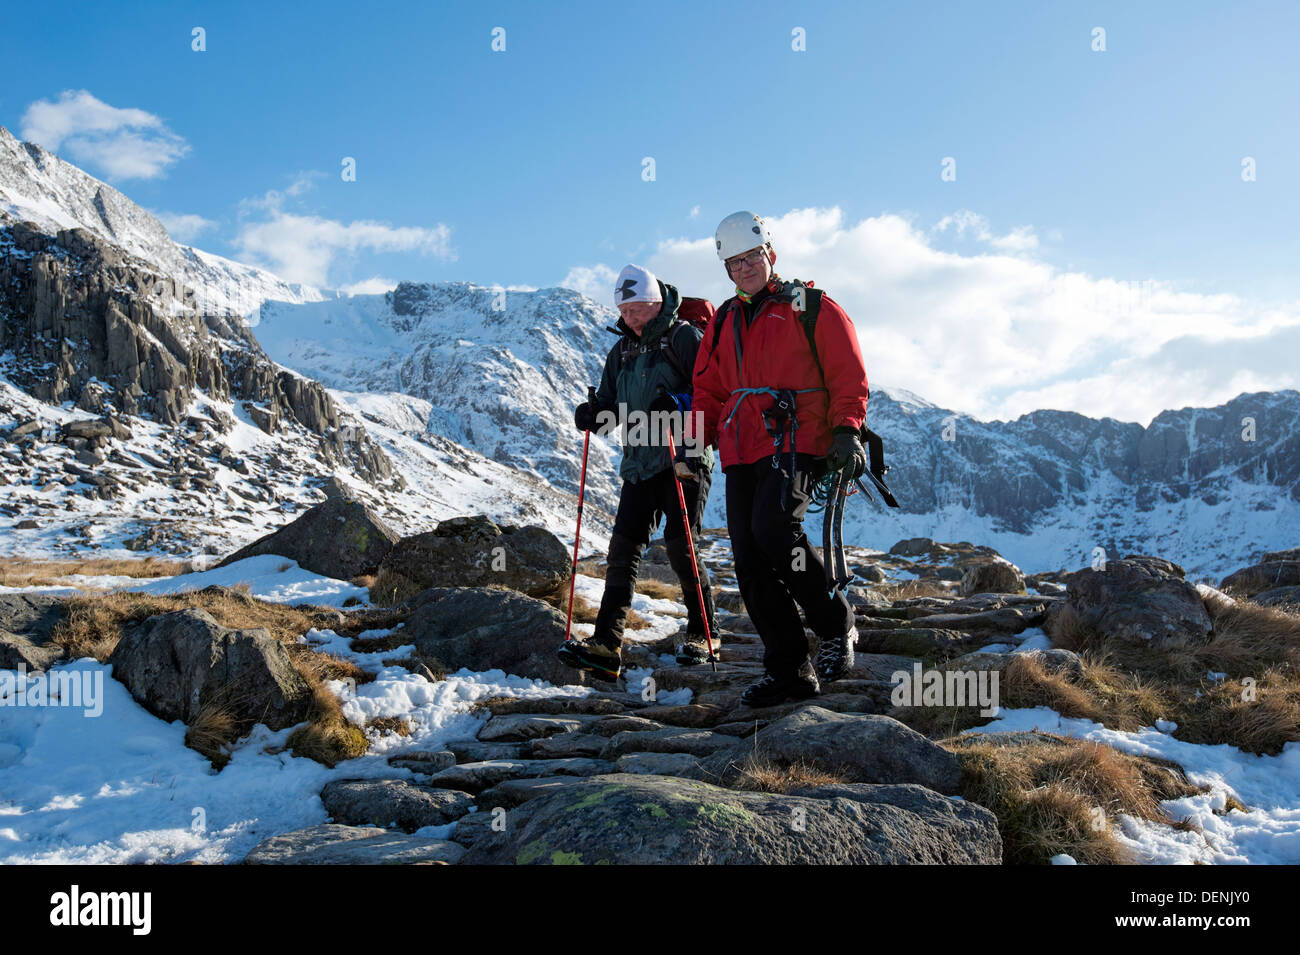 Walkers in the glyderau, Snowdonia National Park, North Wales, UK - Stock Image